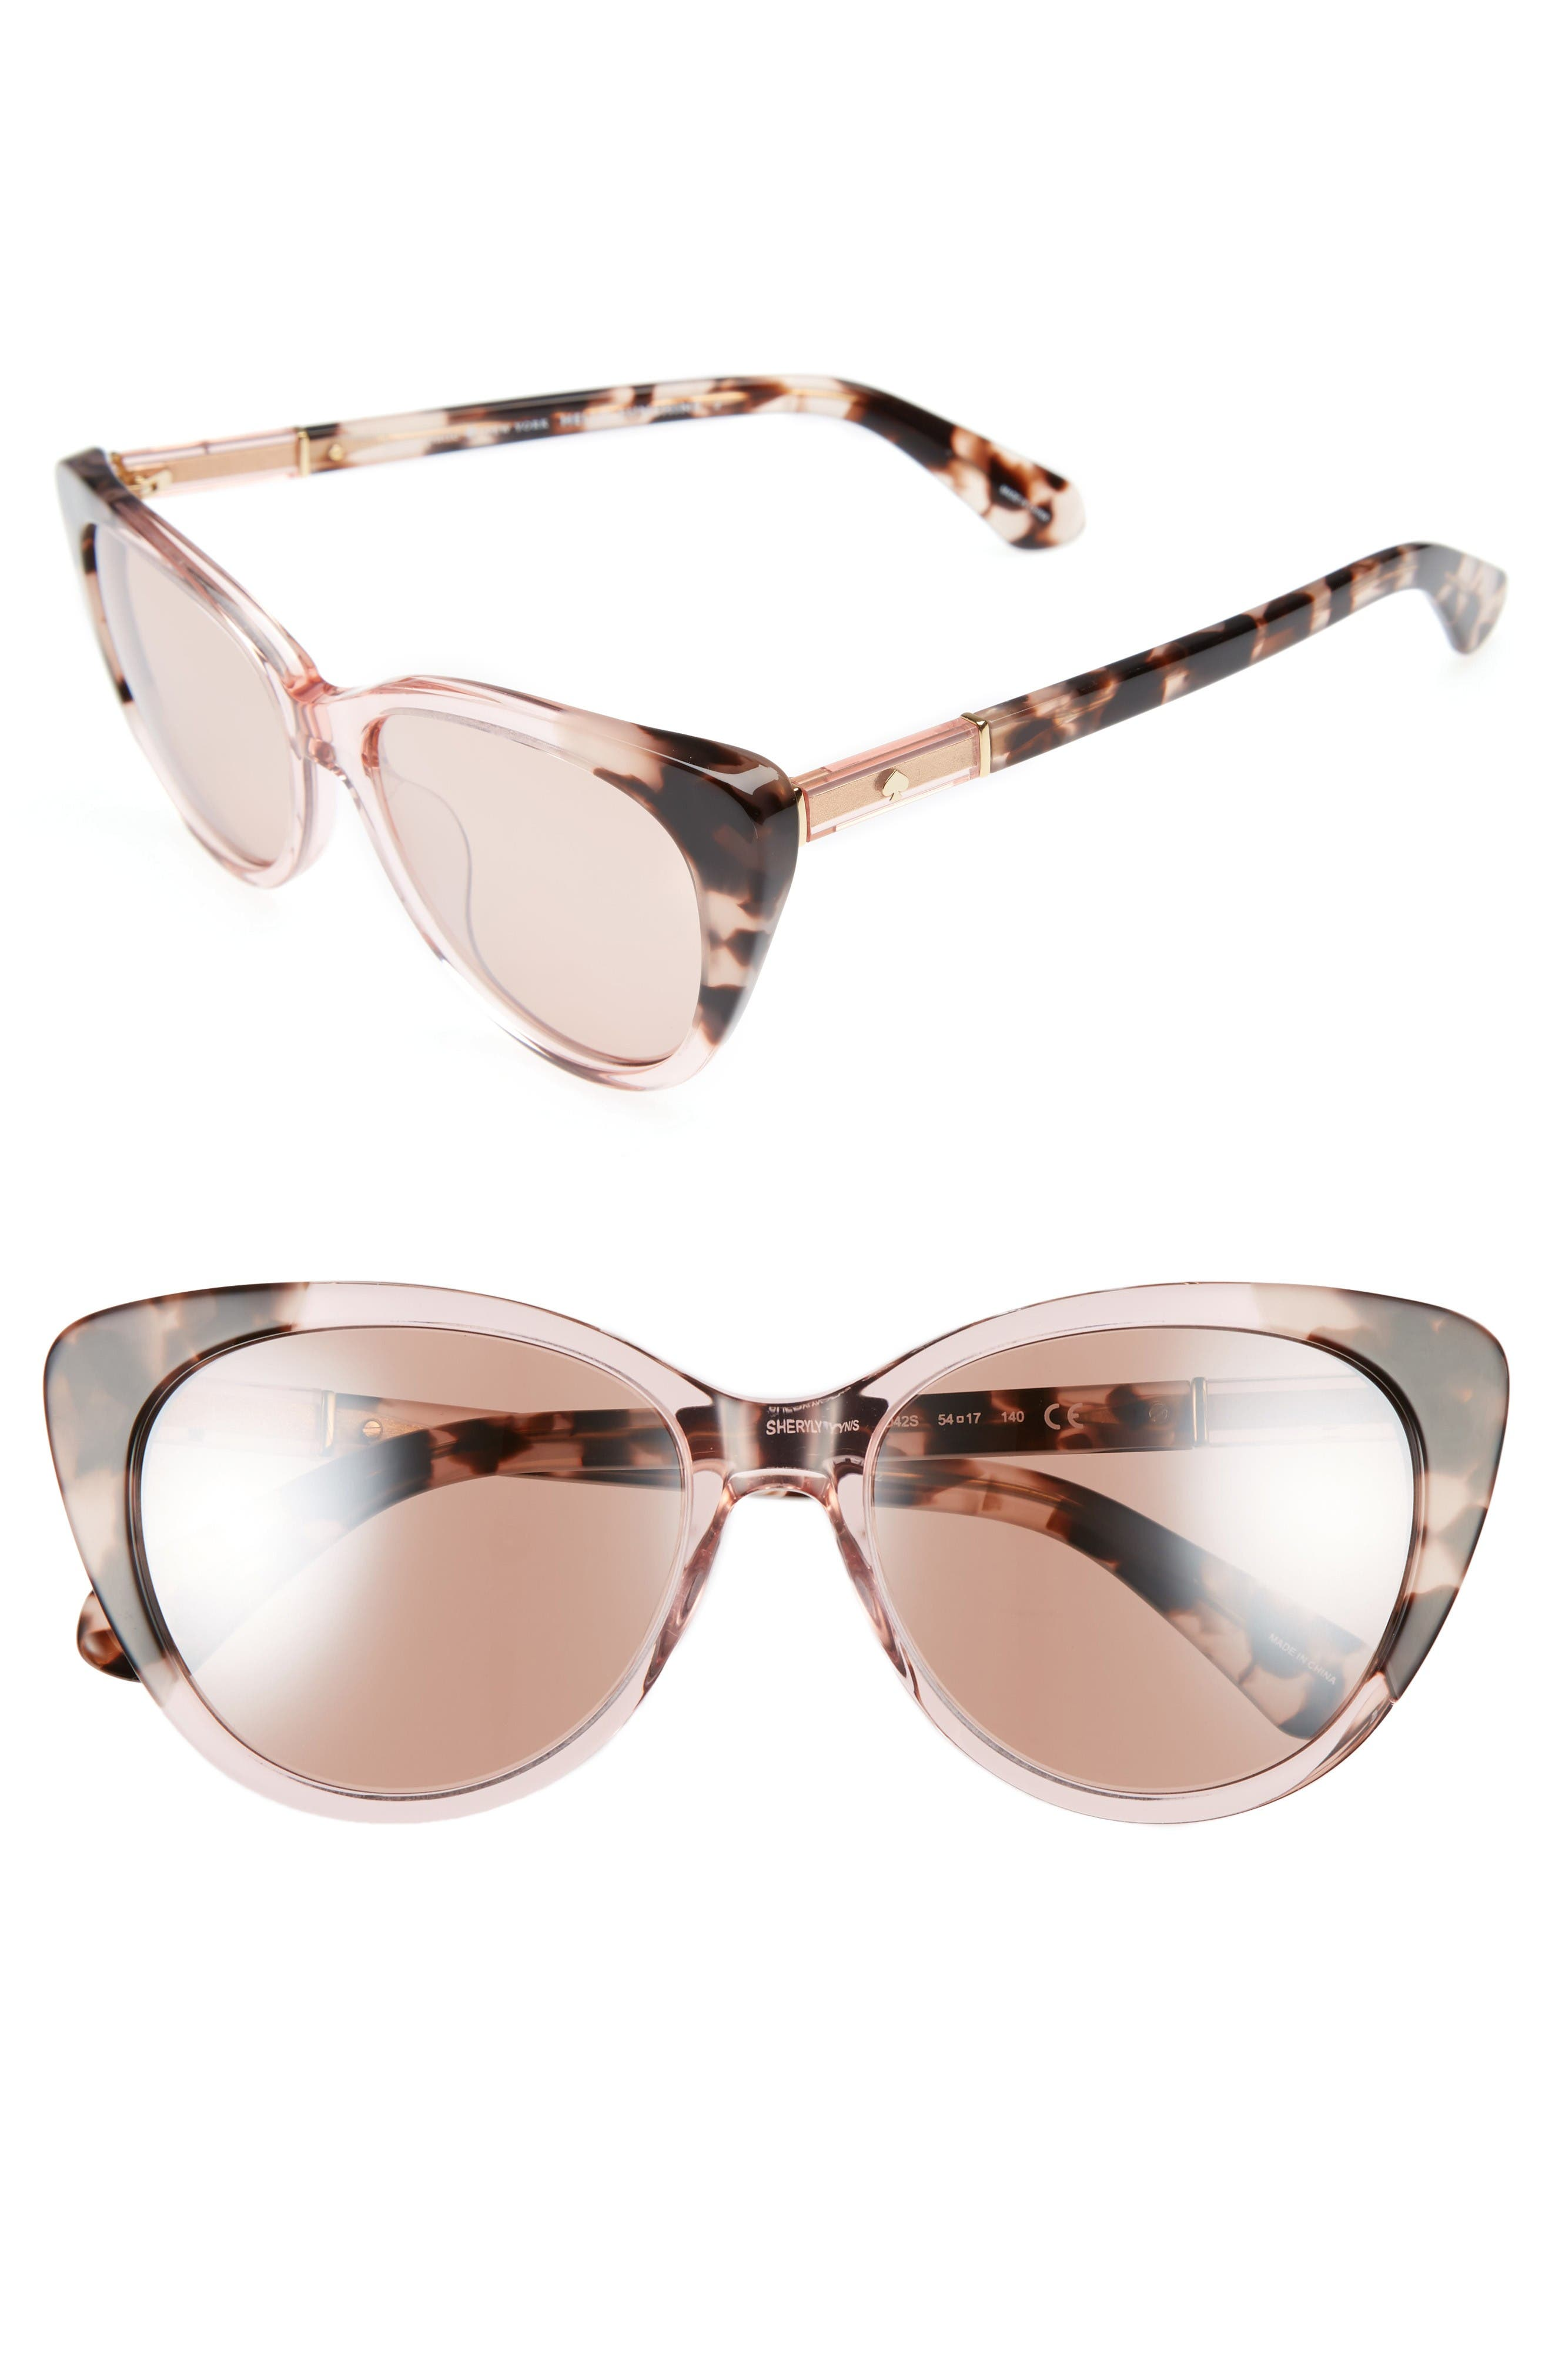 kate spade new york sherylyn 54mm Sunglasses